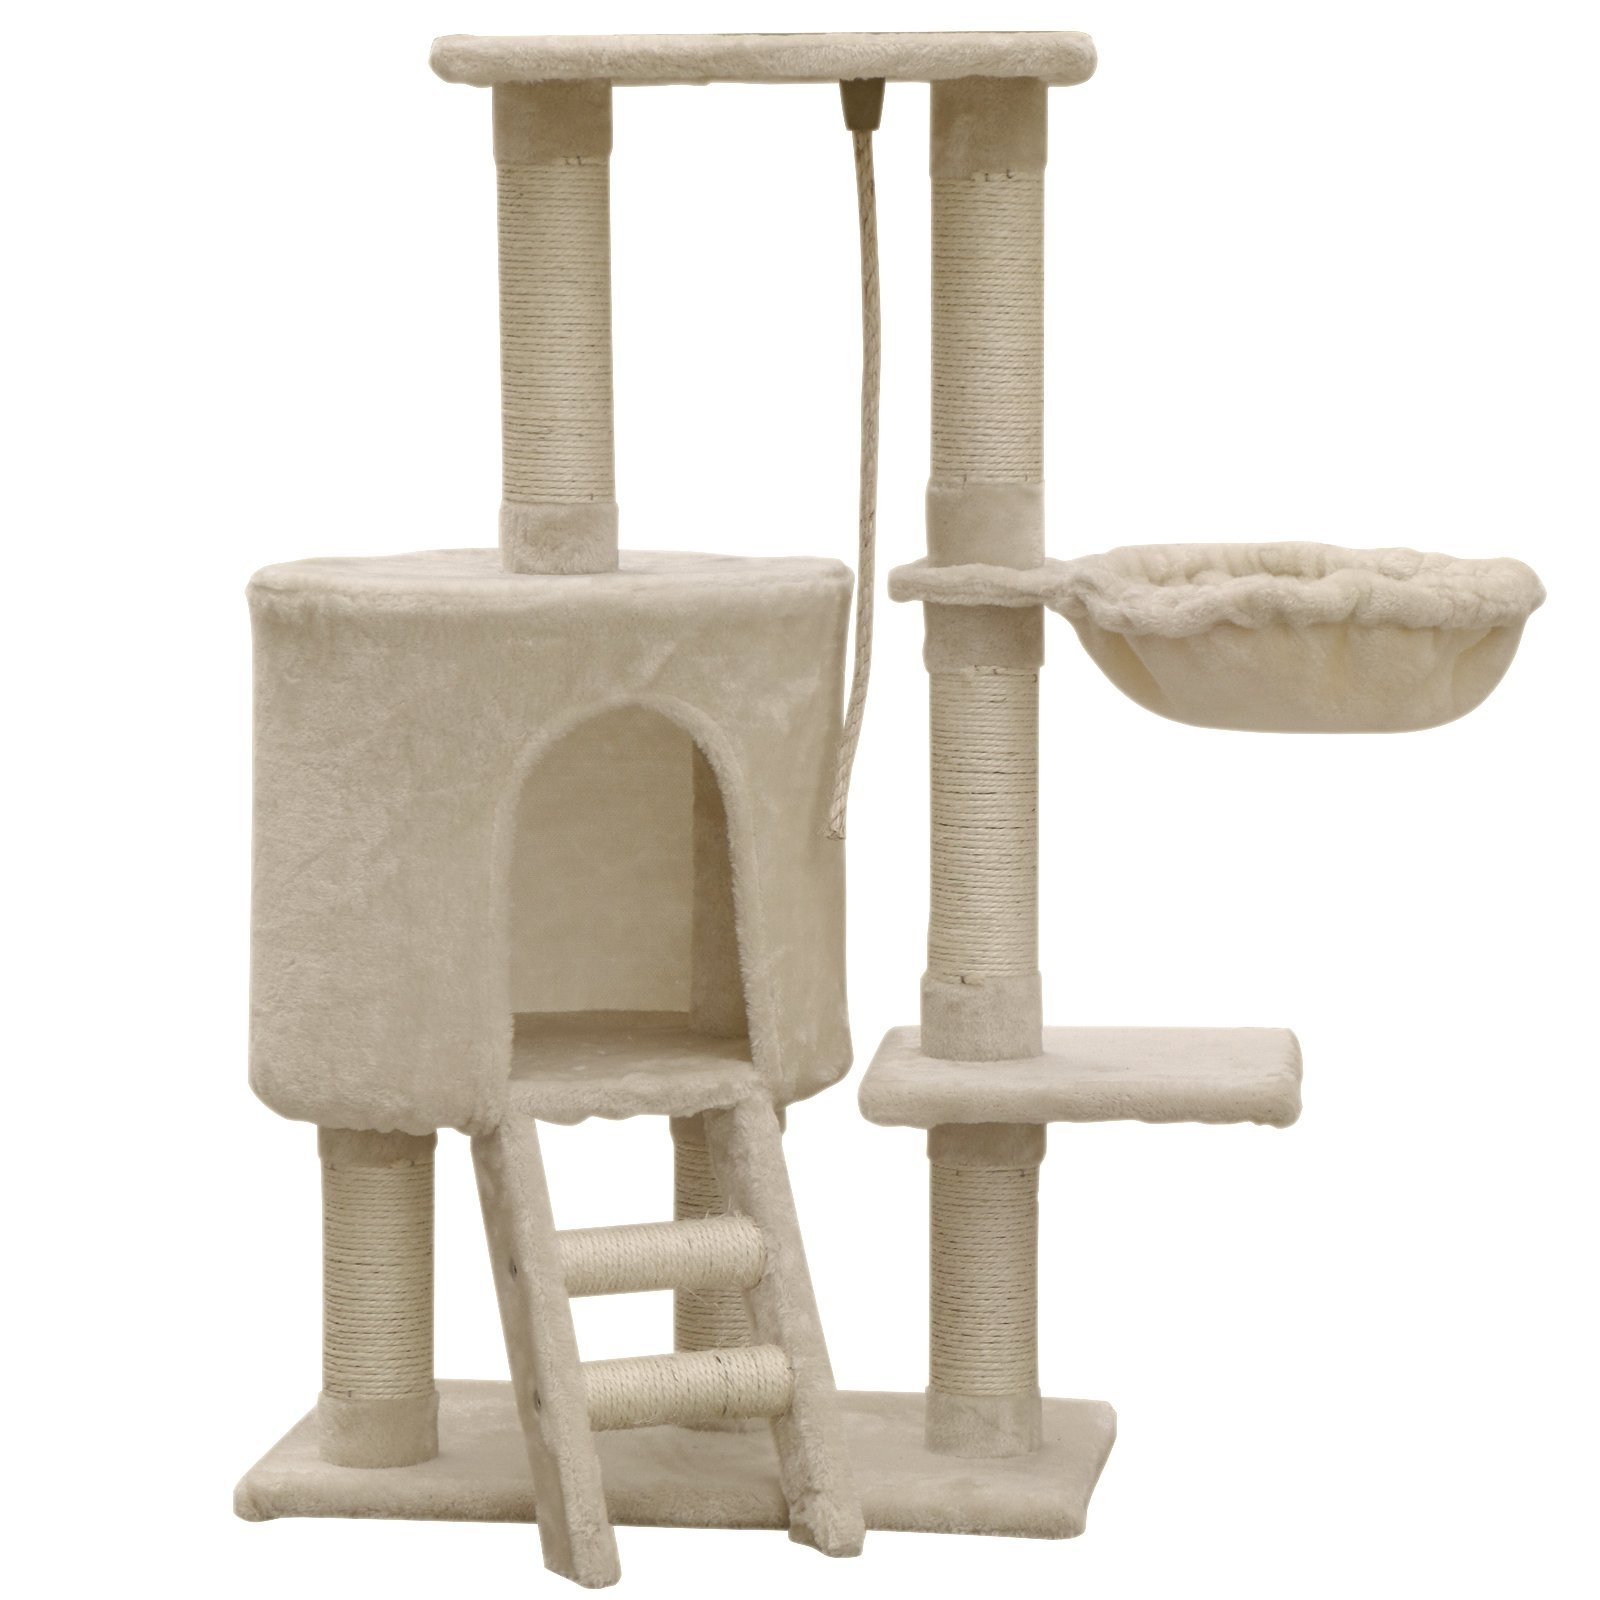 FirstWell Cat Tree Multi Level Activity Center with Kitty Condo Natural Sisal